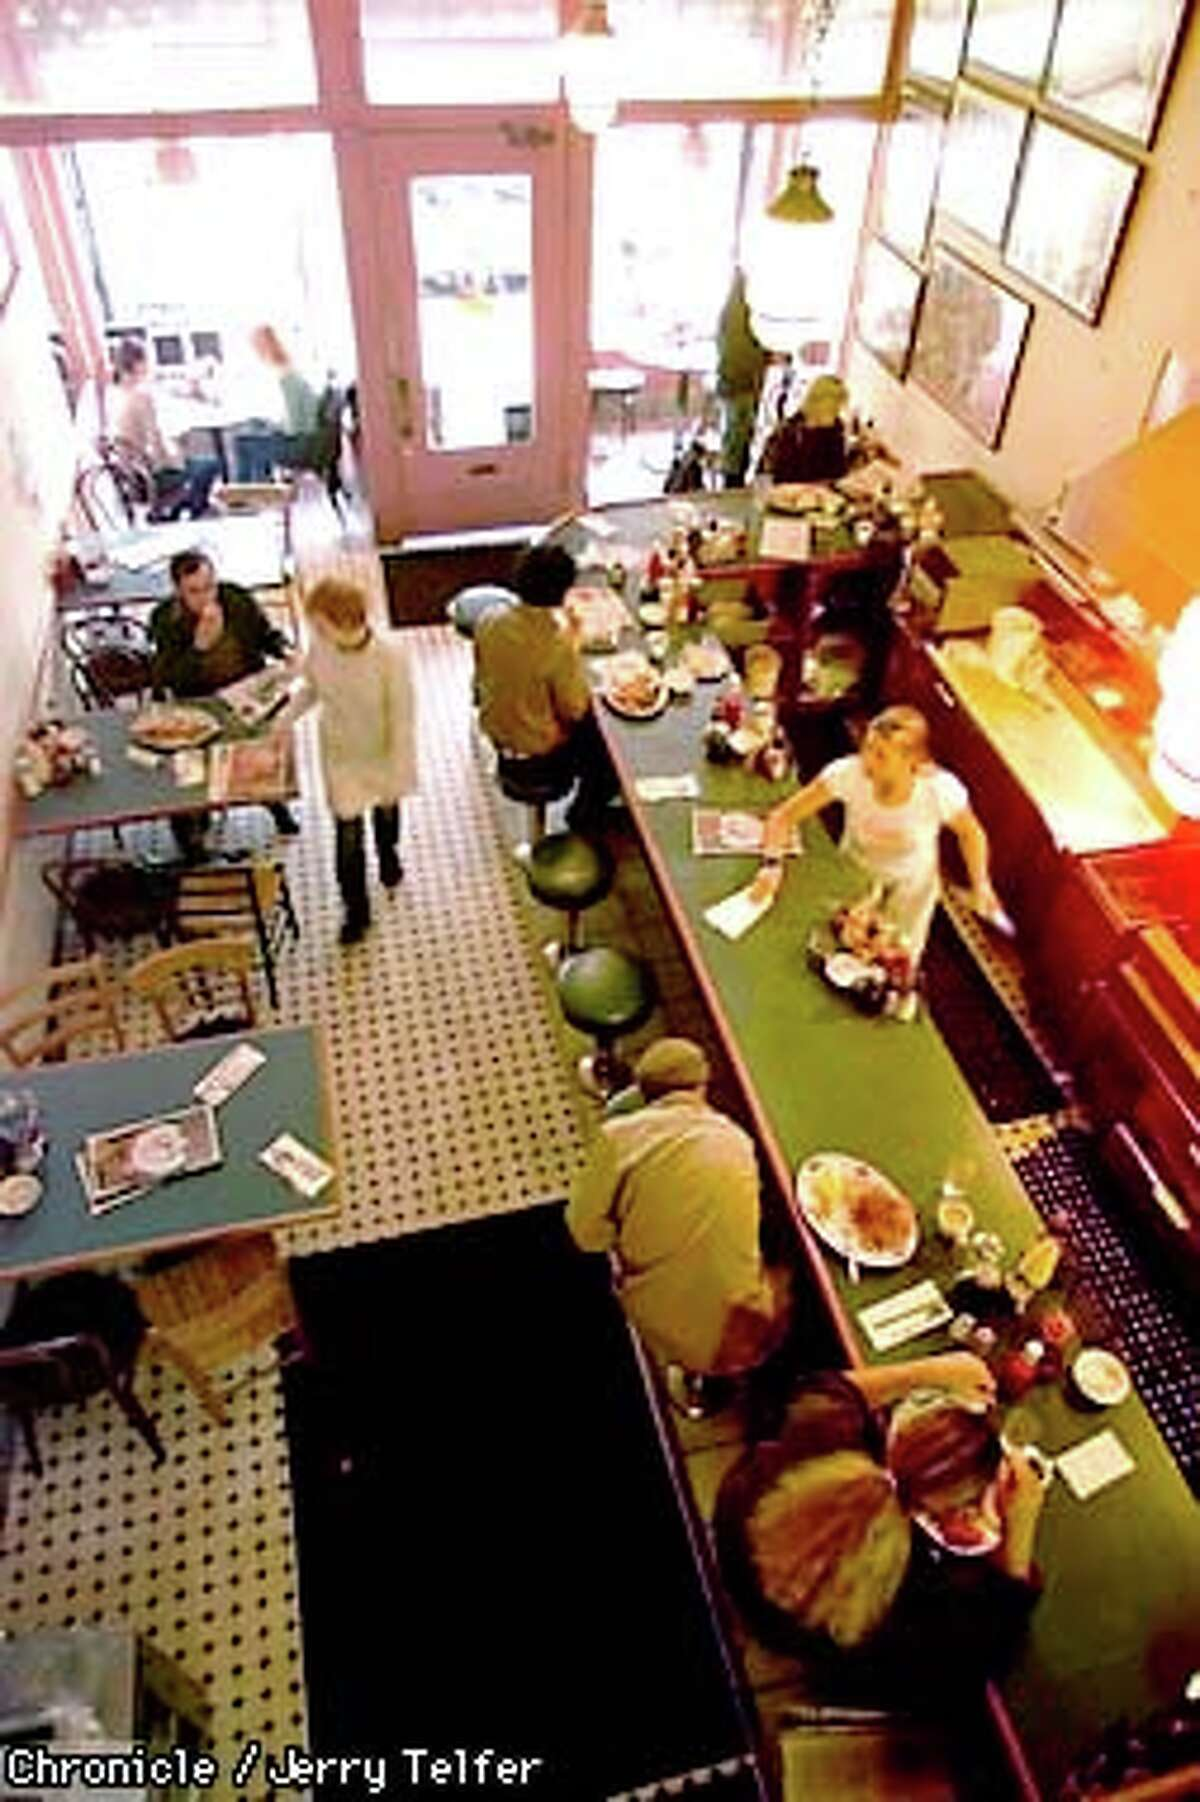 Diners at the Pork Store Cafe in the Haight-Ashbury cure hangovers and fill tummies with a variety of breakfast and lunch items that have one thing in common: huge portions.